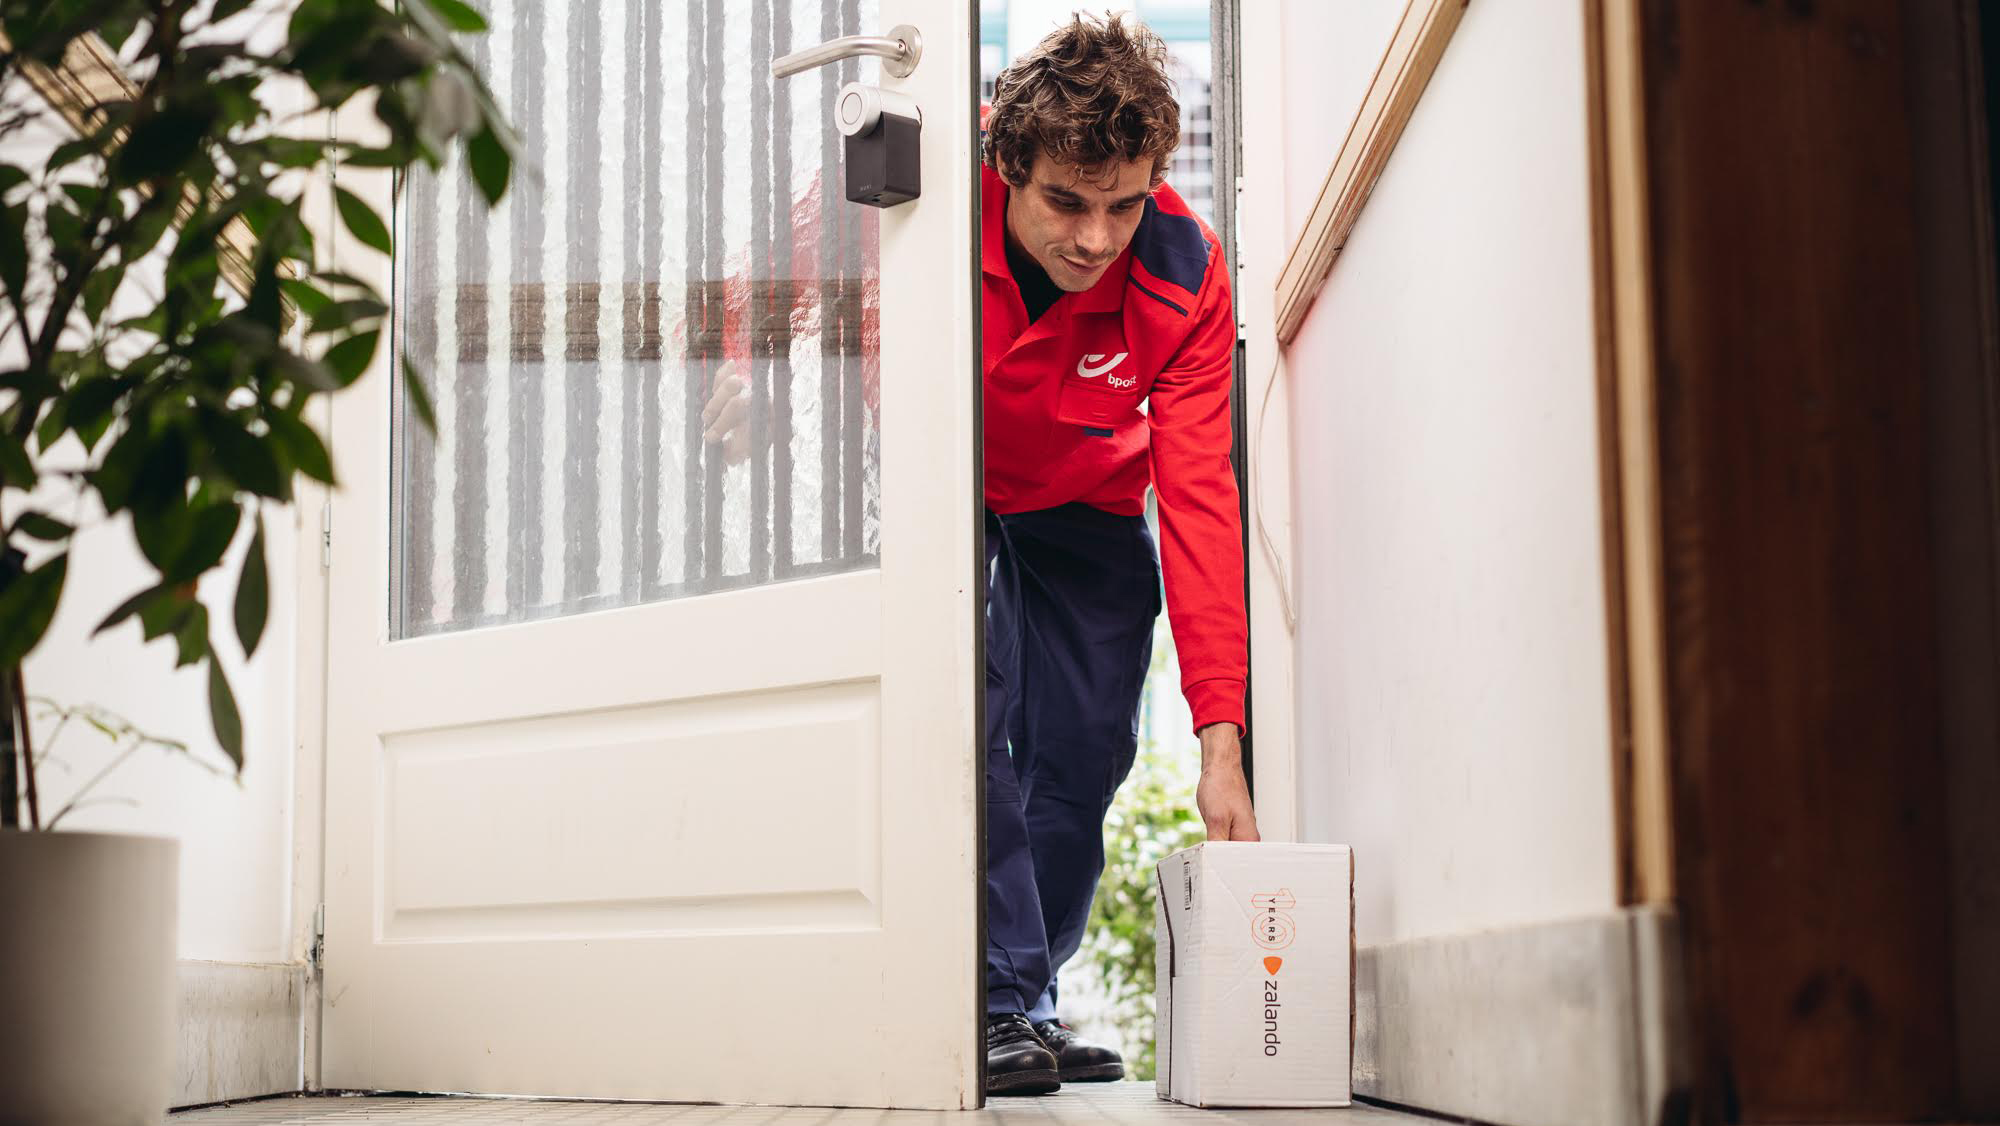 In Home Delivery Zalando Zalando And Bpost Test In Home Delivery In Belgium